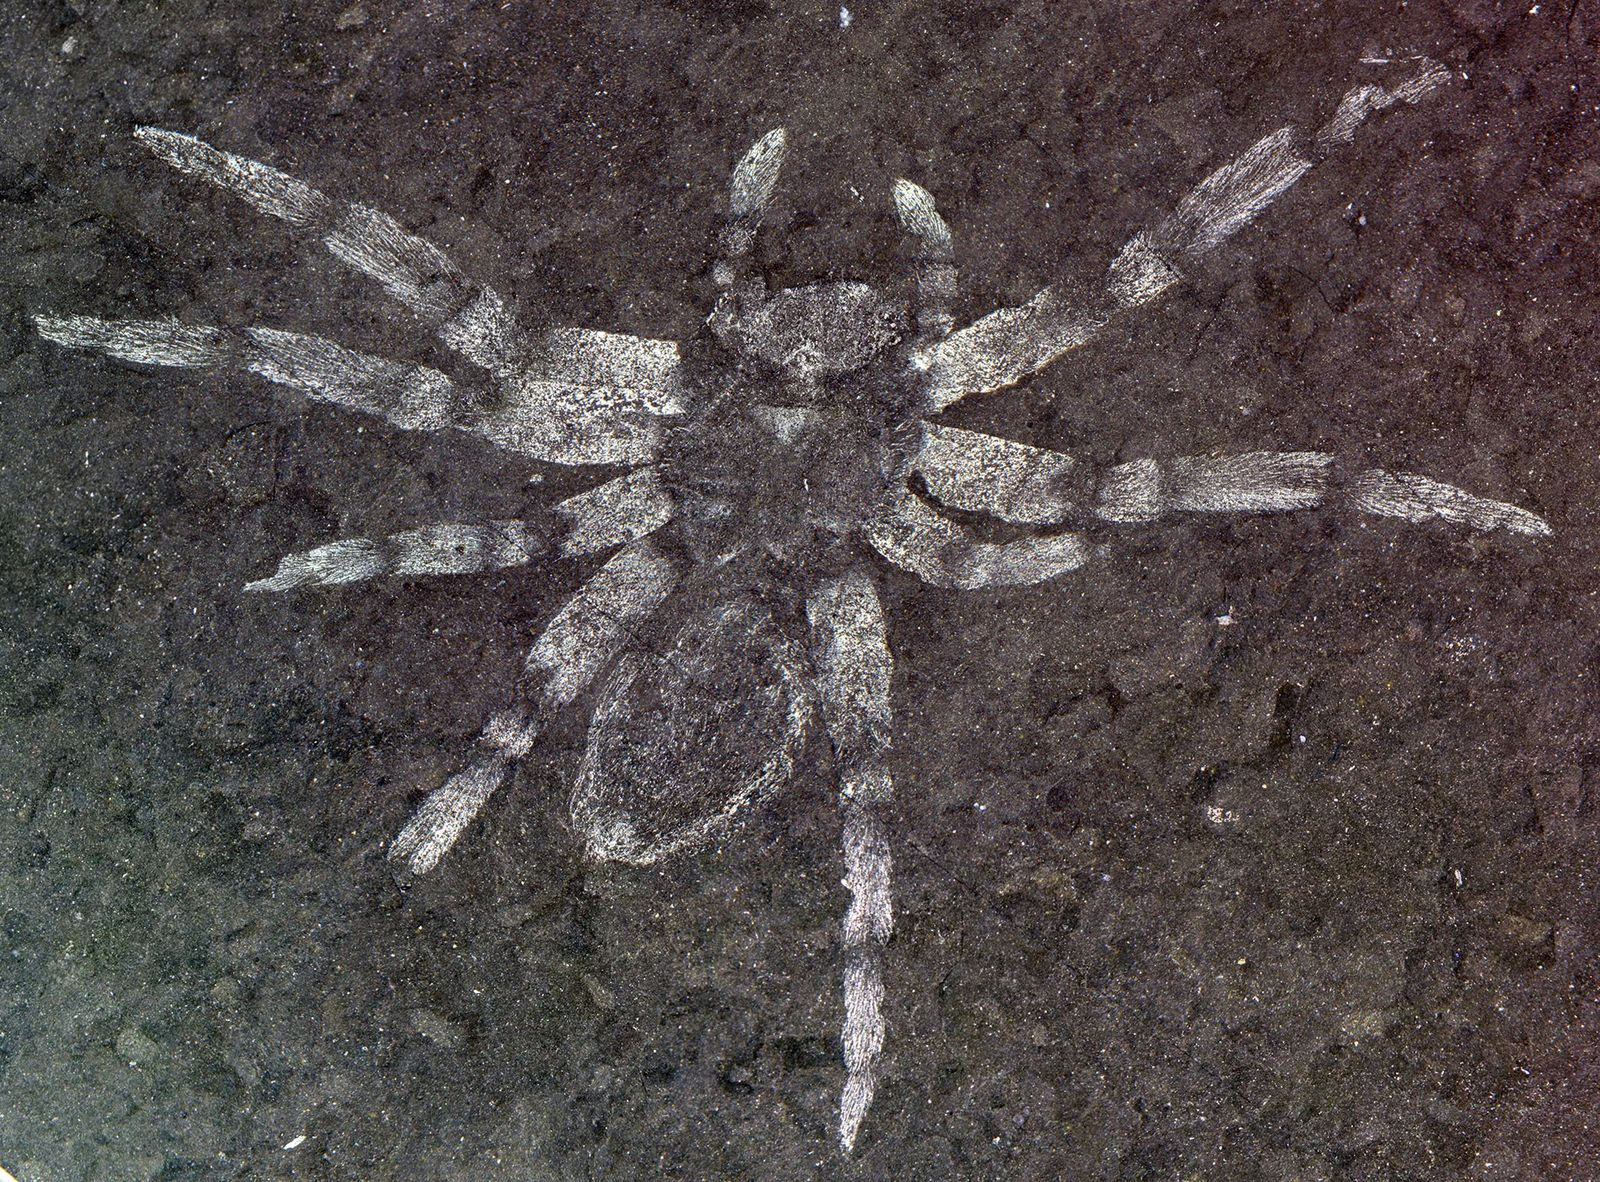 Fossil spiders with 'glowing' eyes found in South Korea